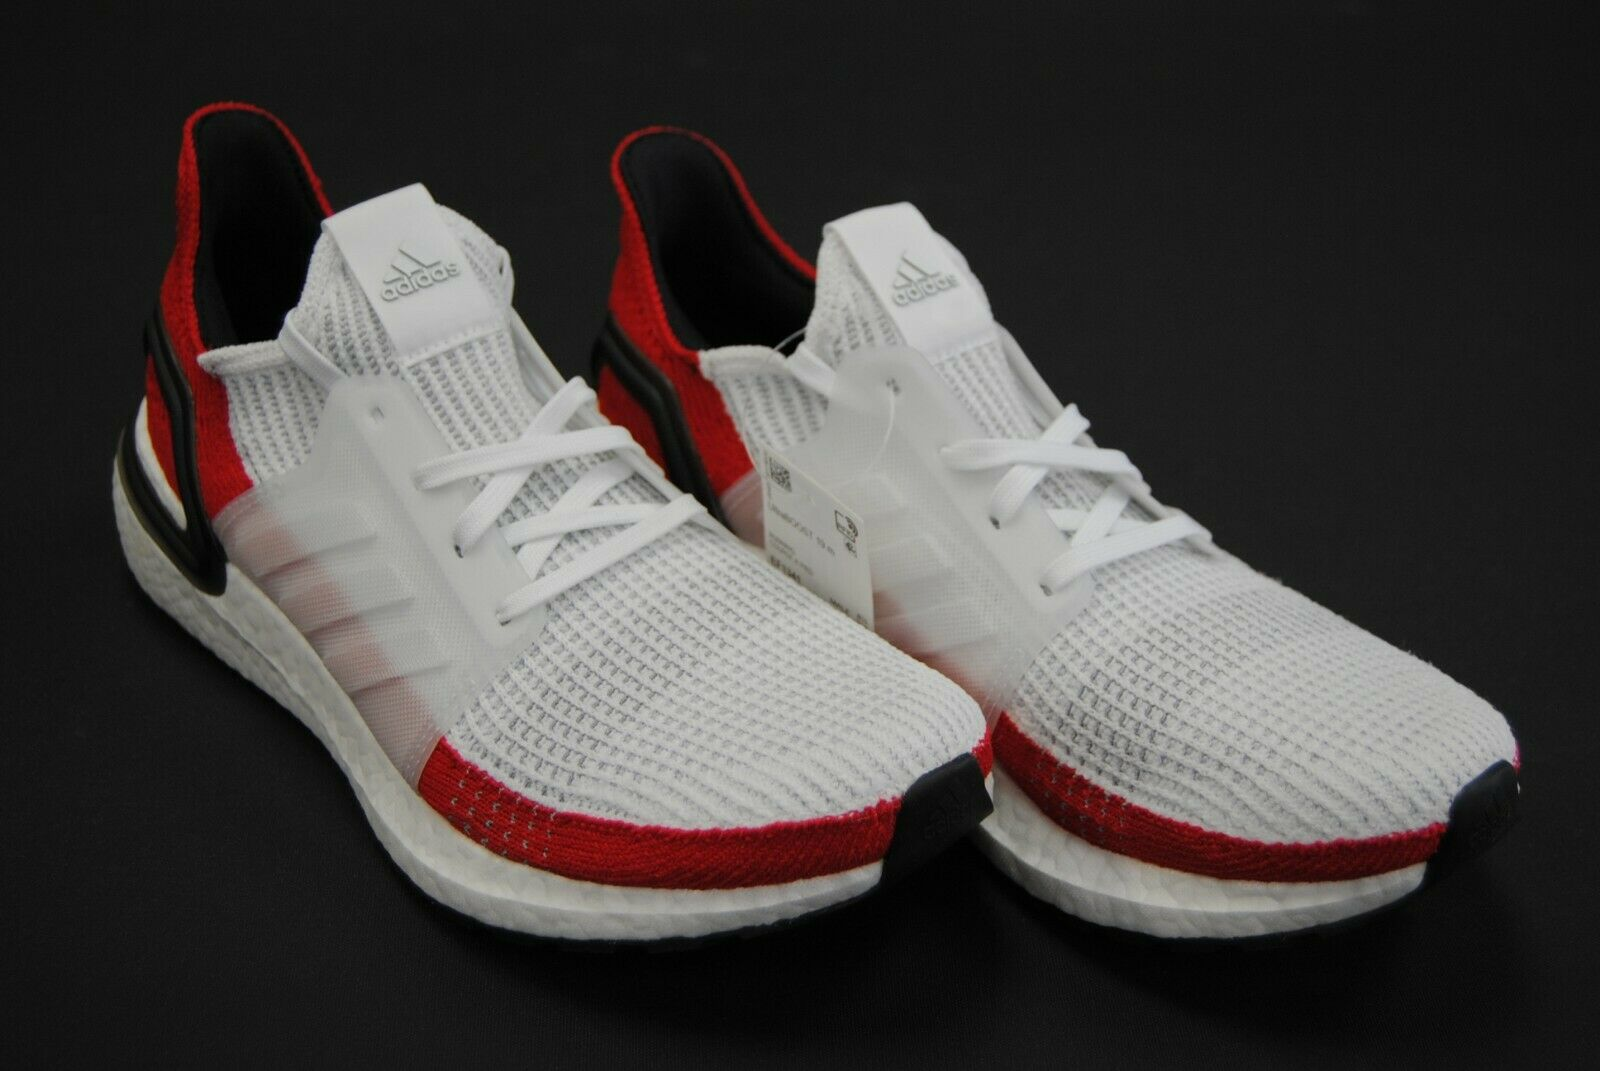 [EF1341] NEW MEN'S ADIDAS ULTRABOOST 19 RUNNING SHOES WHITE RED BLACK AM335